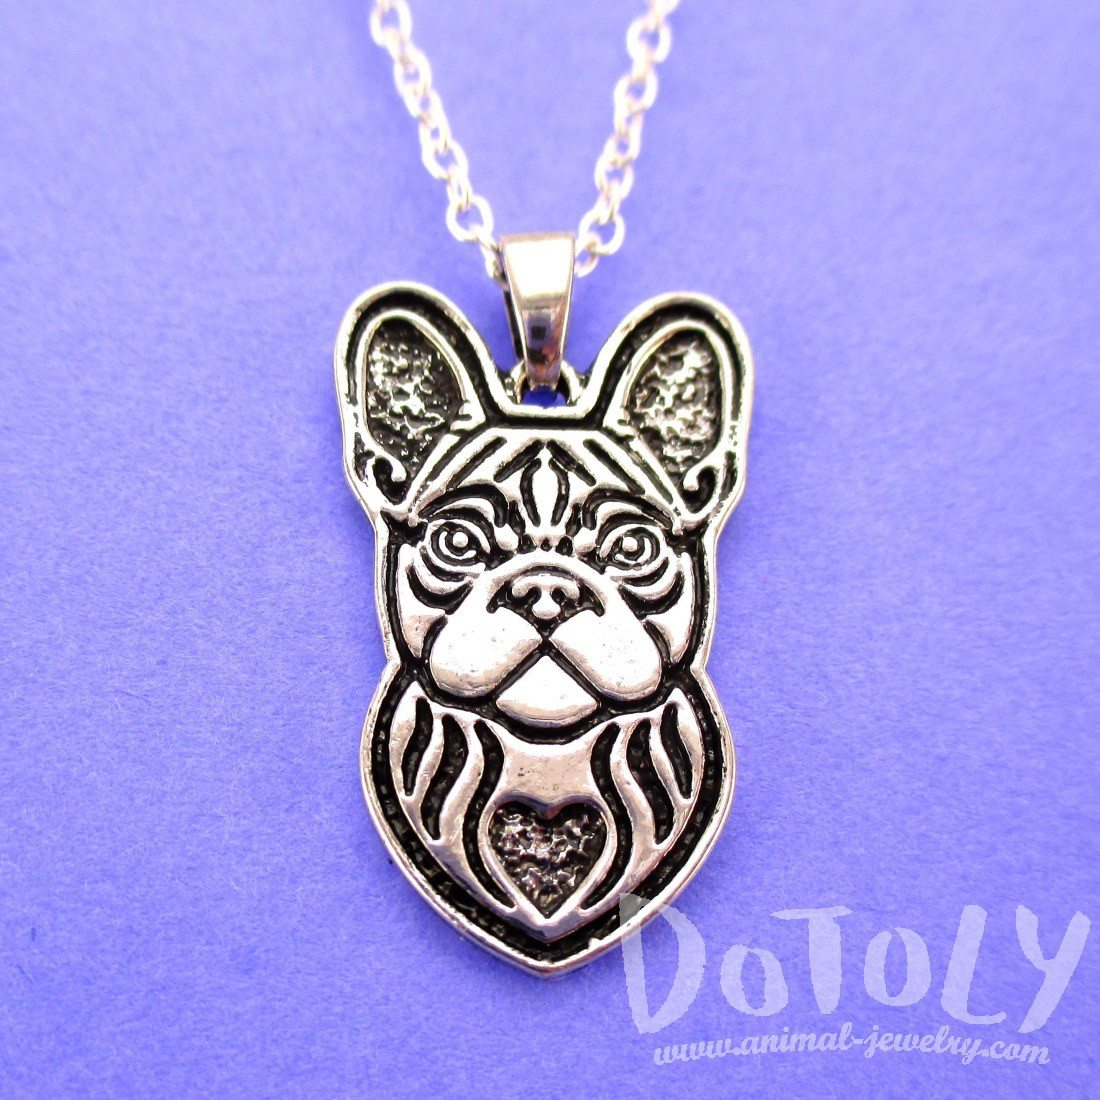 French Bulldog Shaped Pendant Necklace in Silver | Animal Jewelry